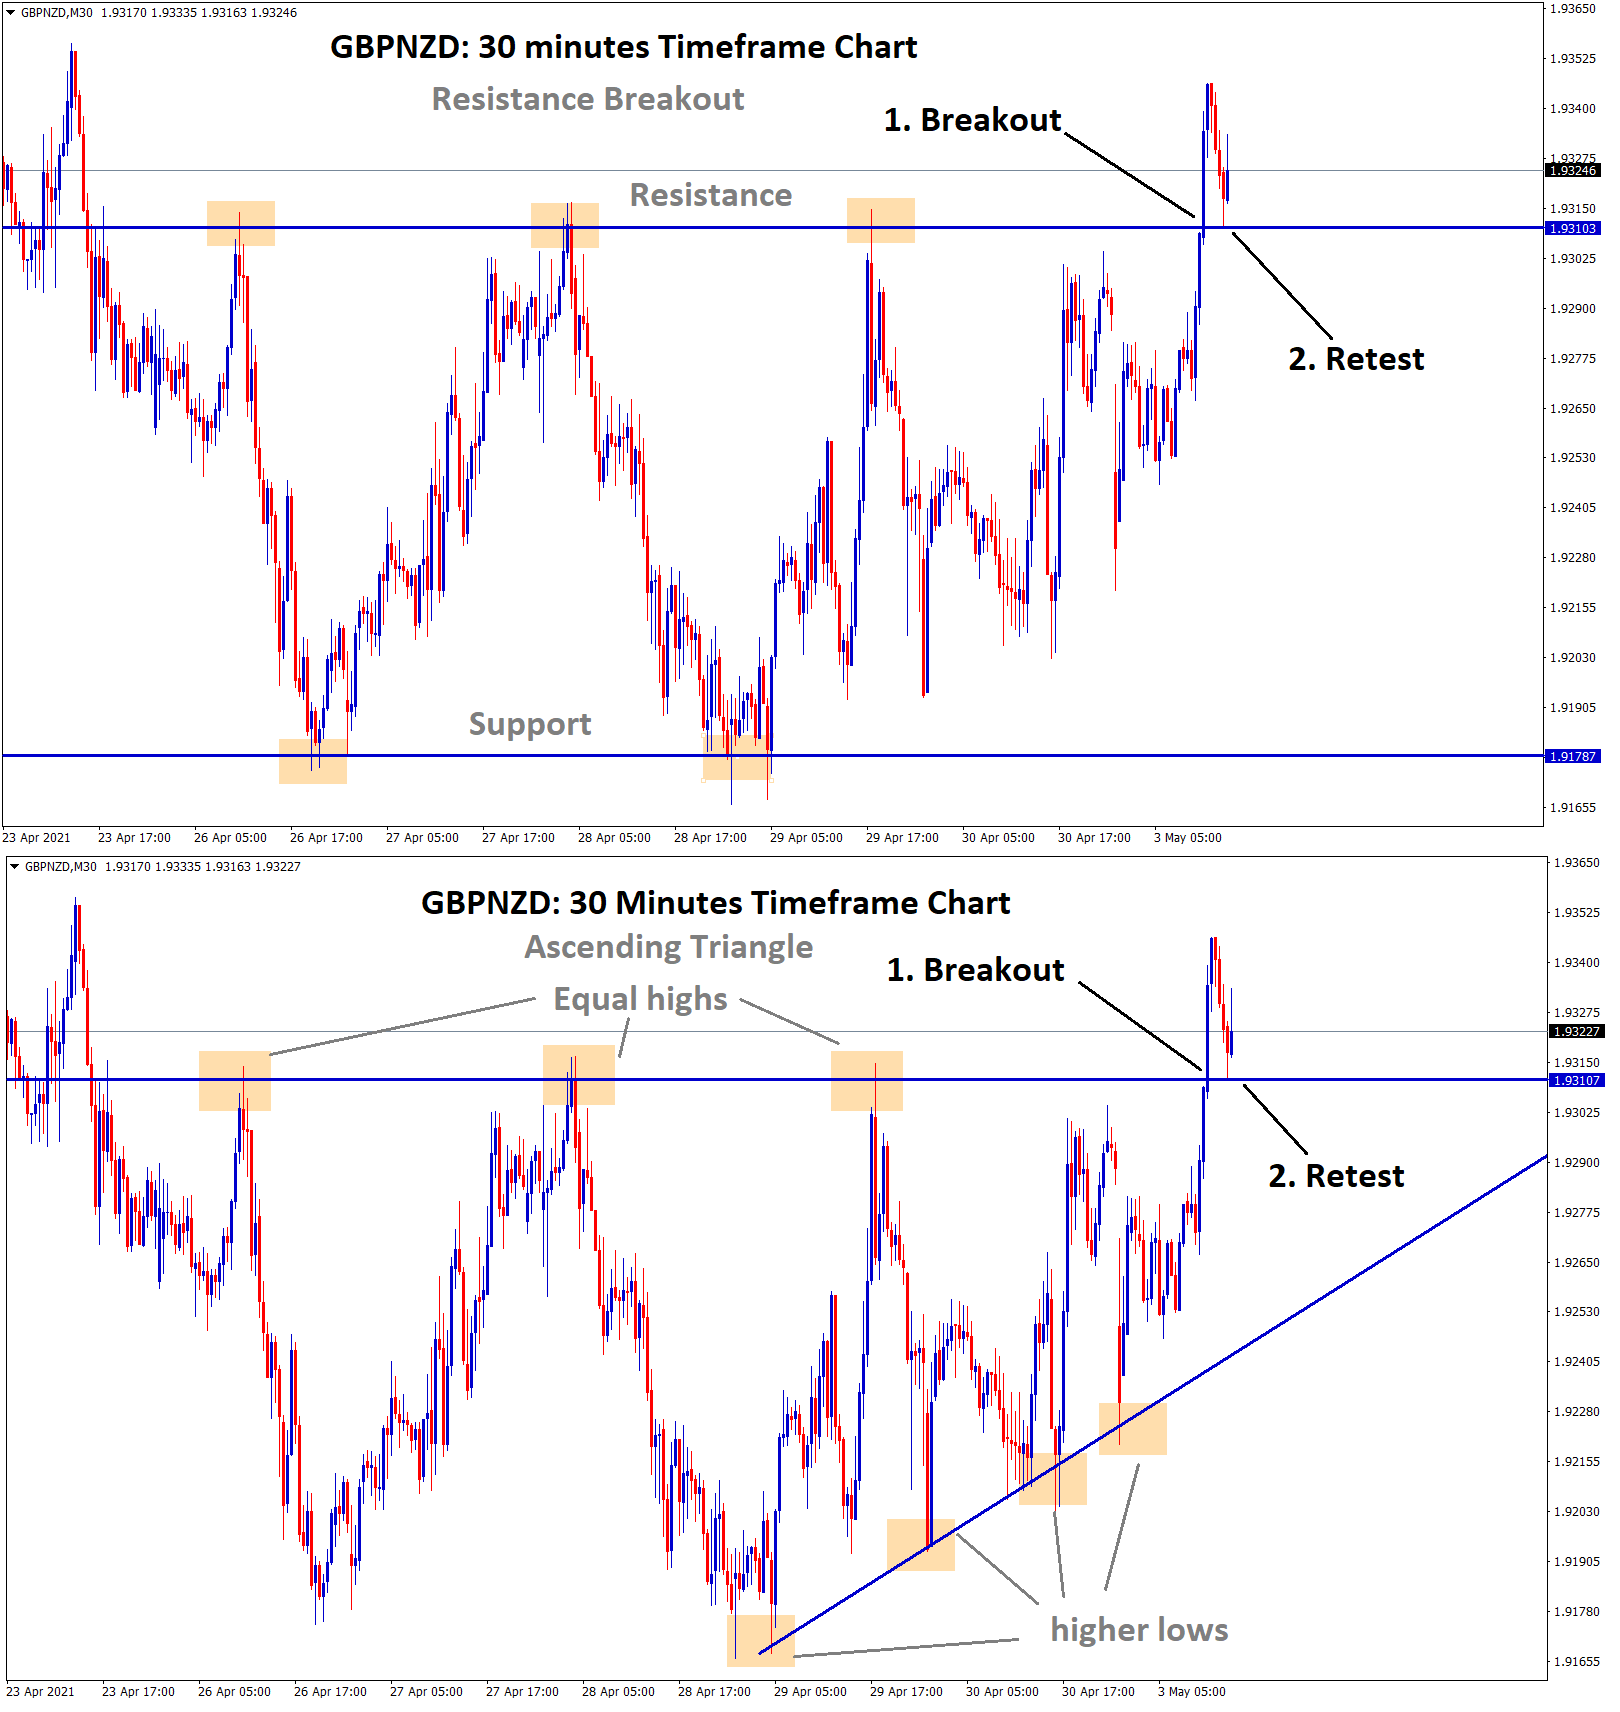 gbpnzd resistance breakout and retest